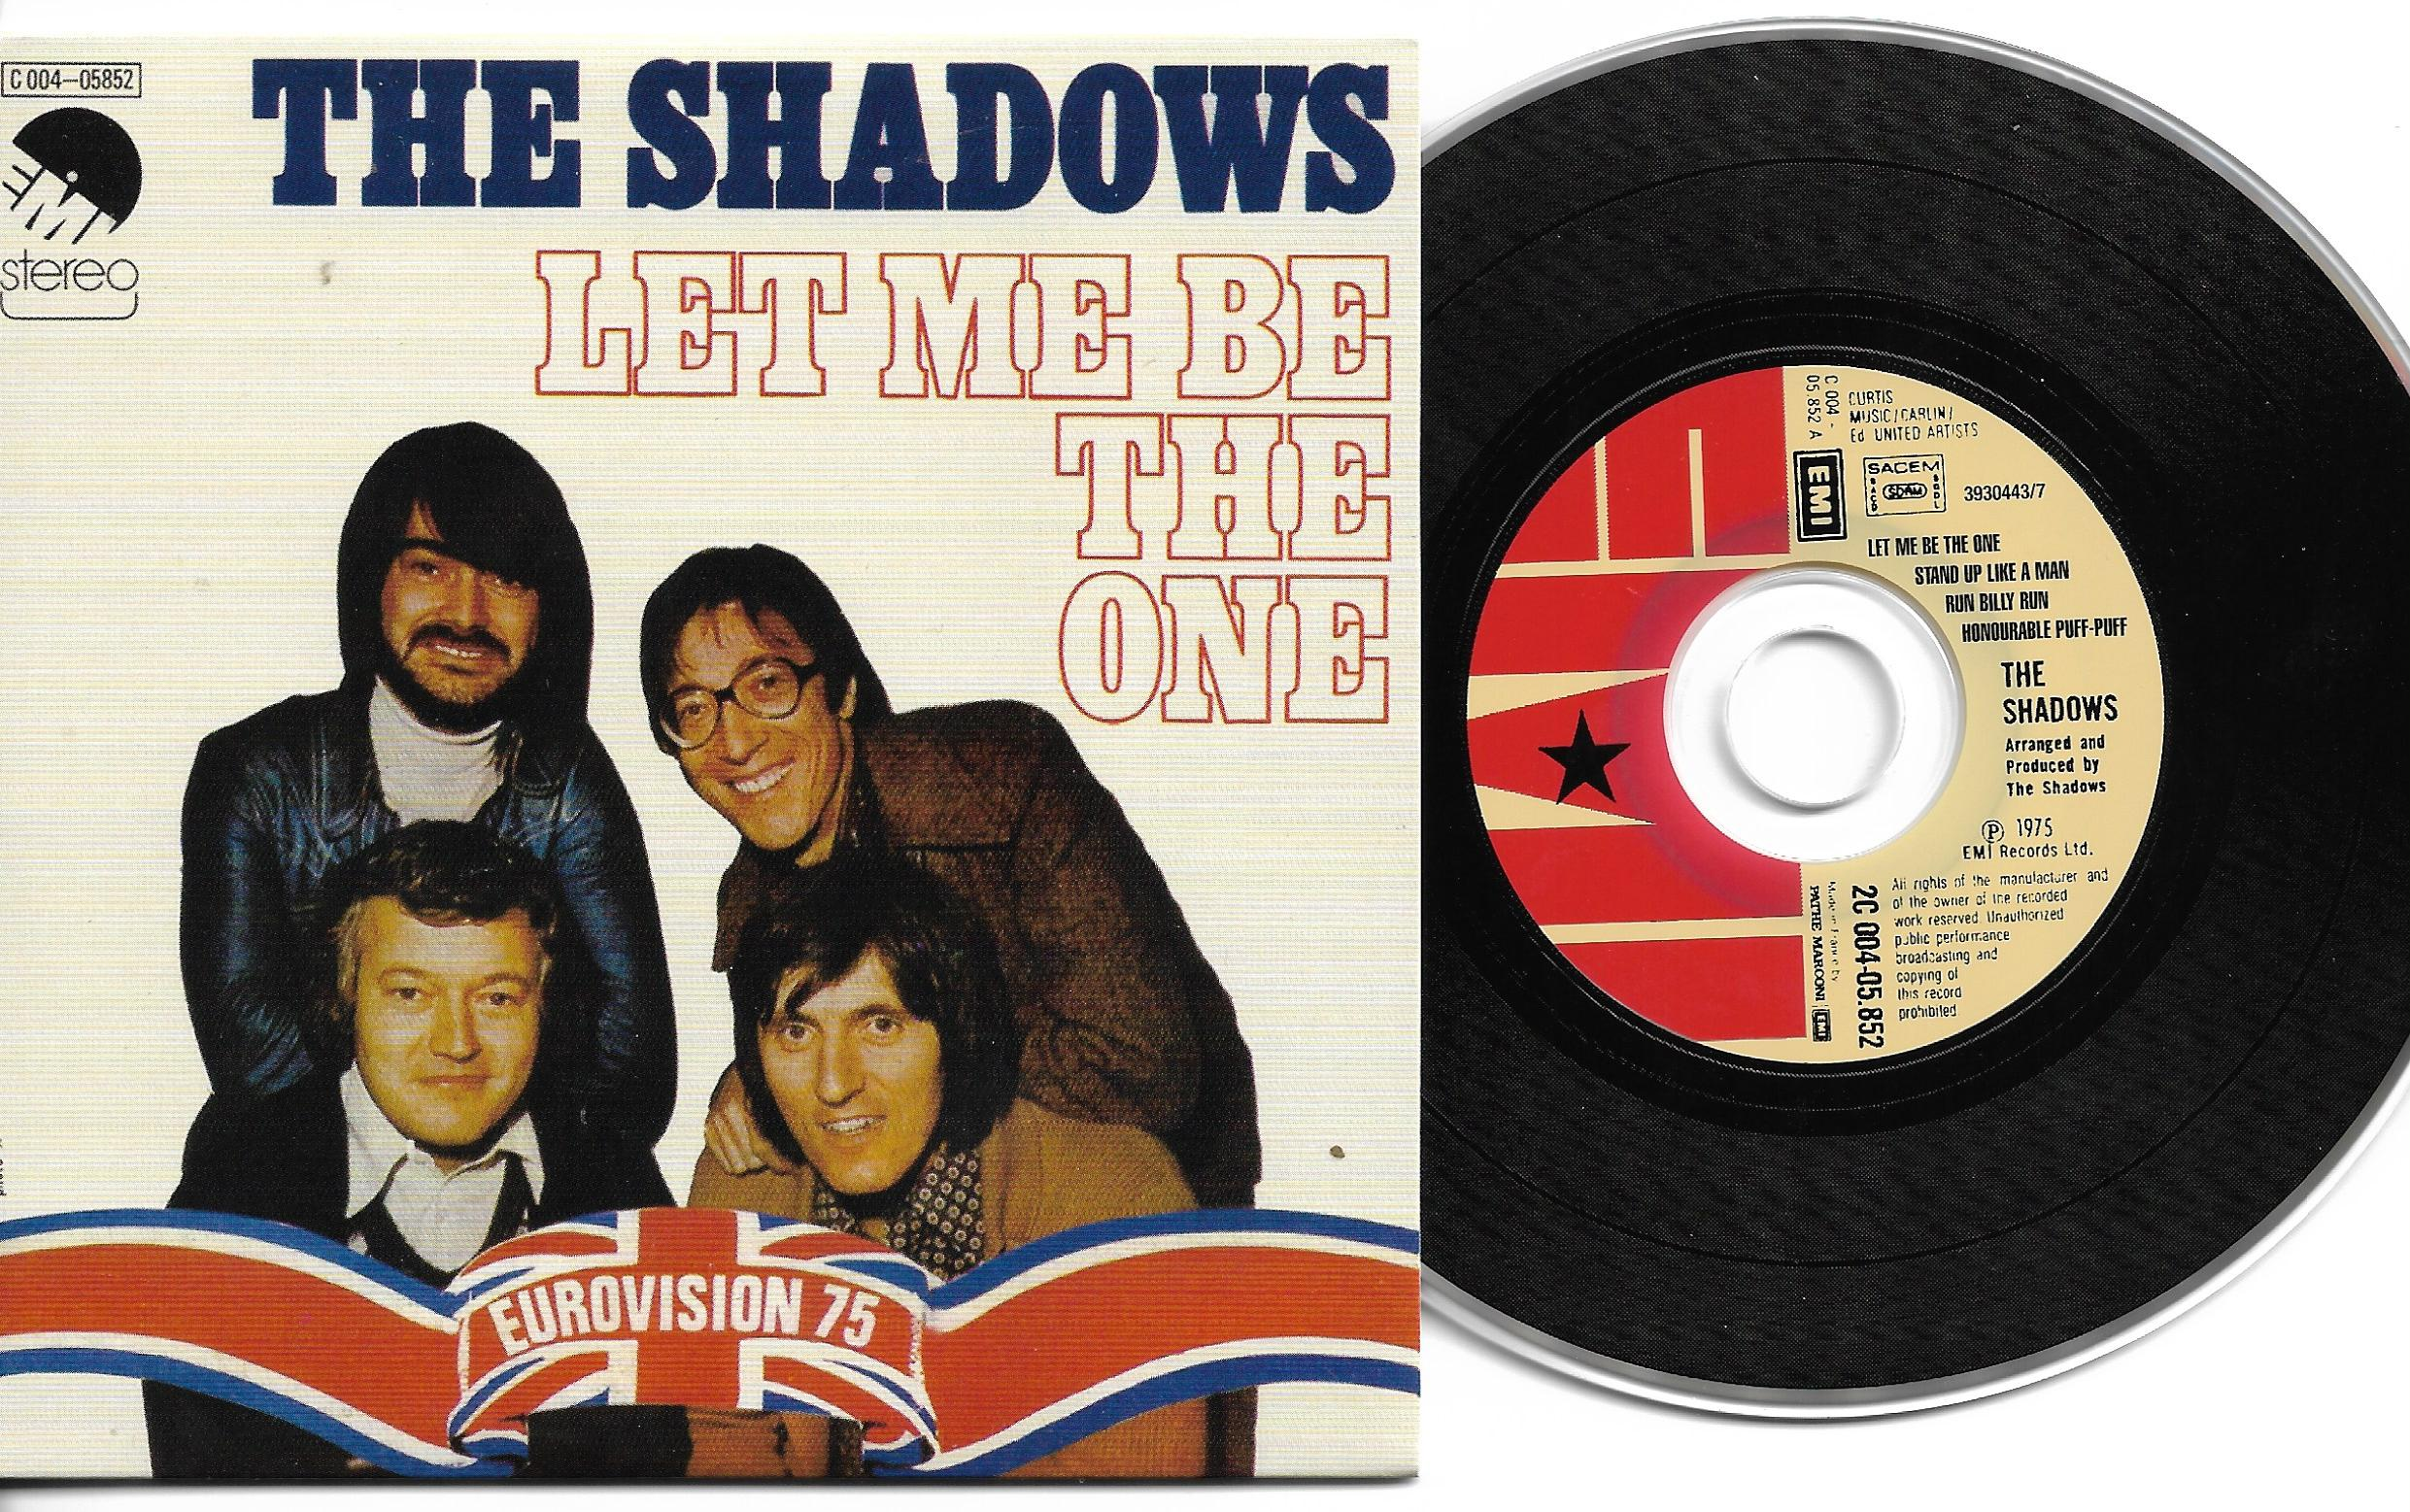 EUROVISION 1975 UK : THE SHADOWS - Let me be the one 4-TRACk CARD SLEEVE - Limited edition - - CD single